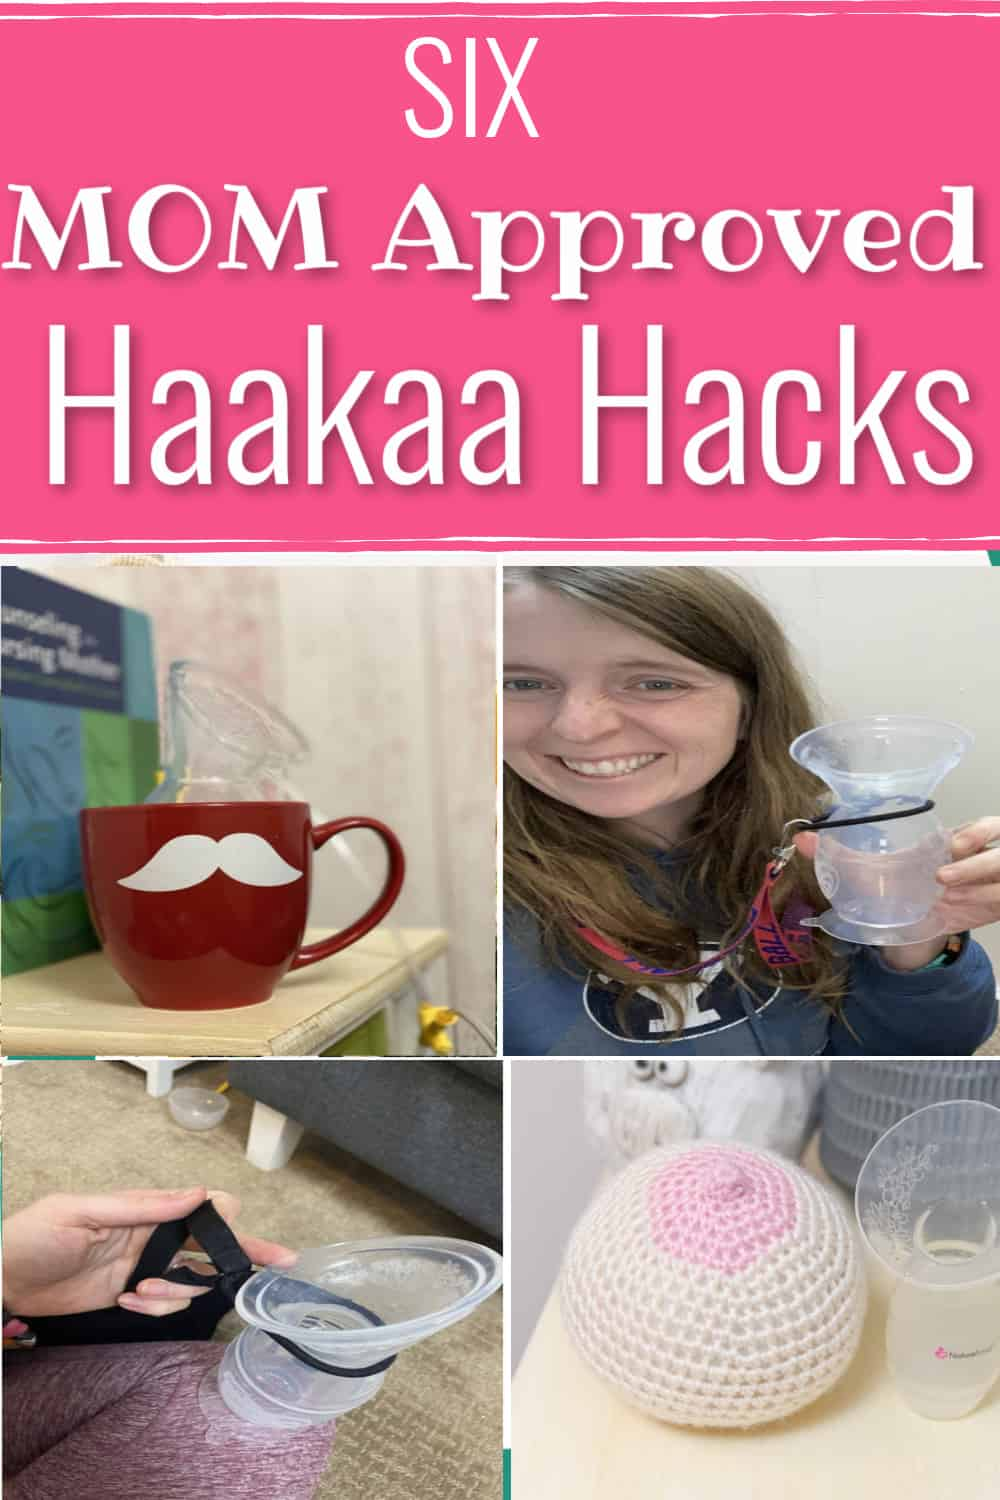 Now that we've taught you in previous posts what the Haakaa Silicone Breast Pump is and how to use it. We felt it was the appropriate time to hit you with some tips and tricks to create an even more seamless Haakaa experience for you!